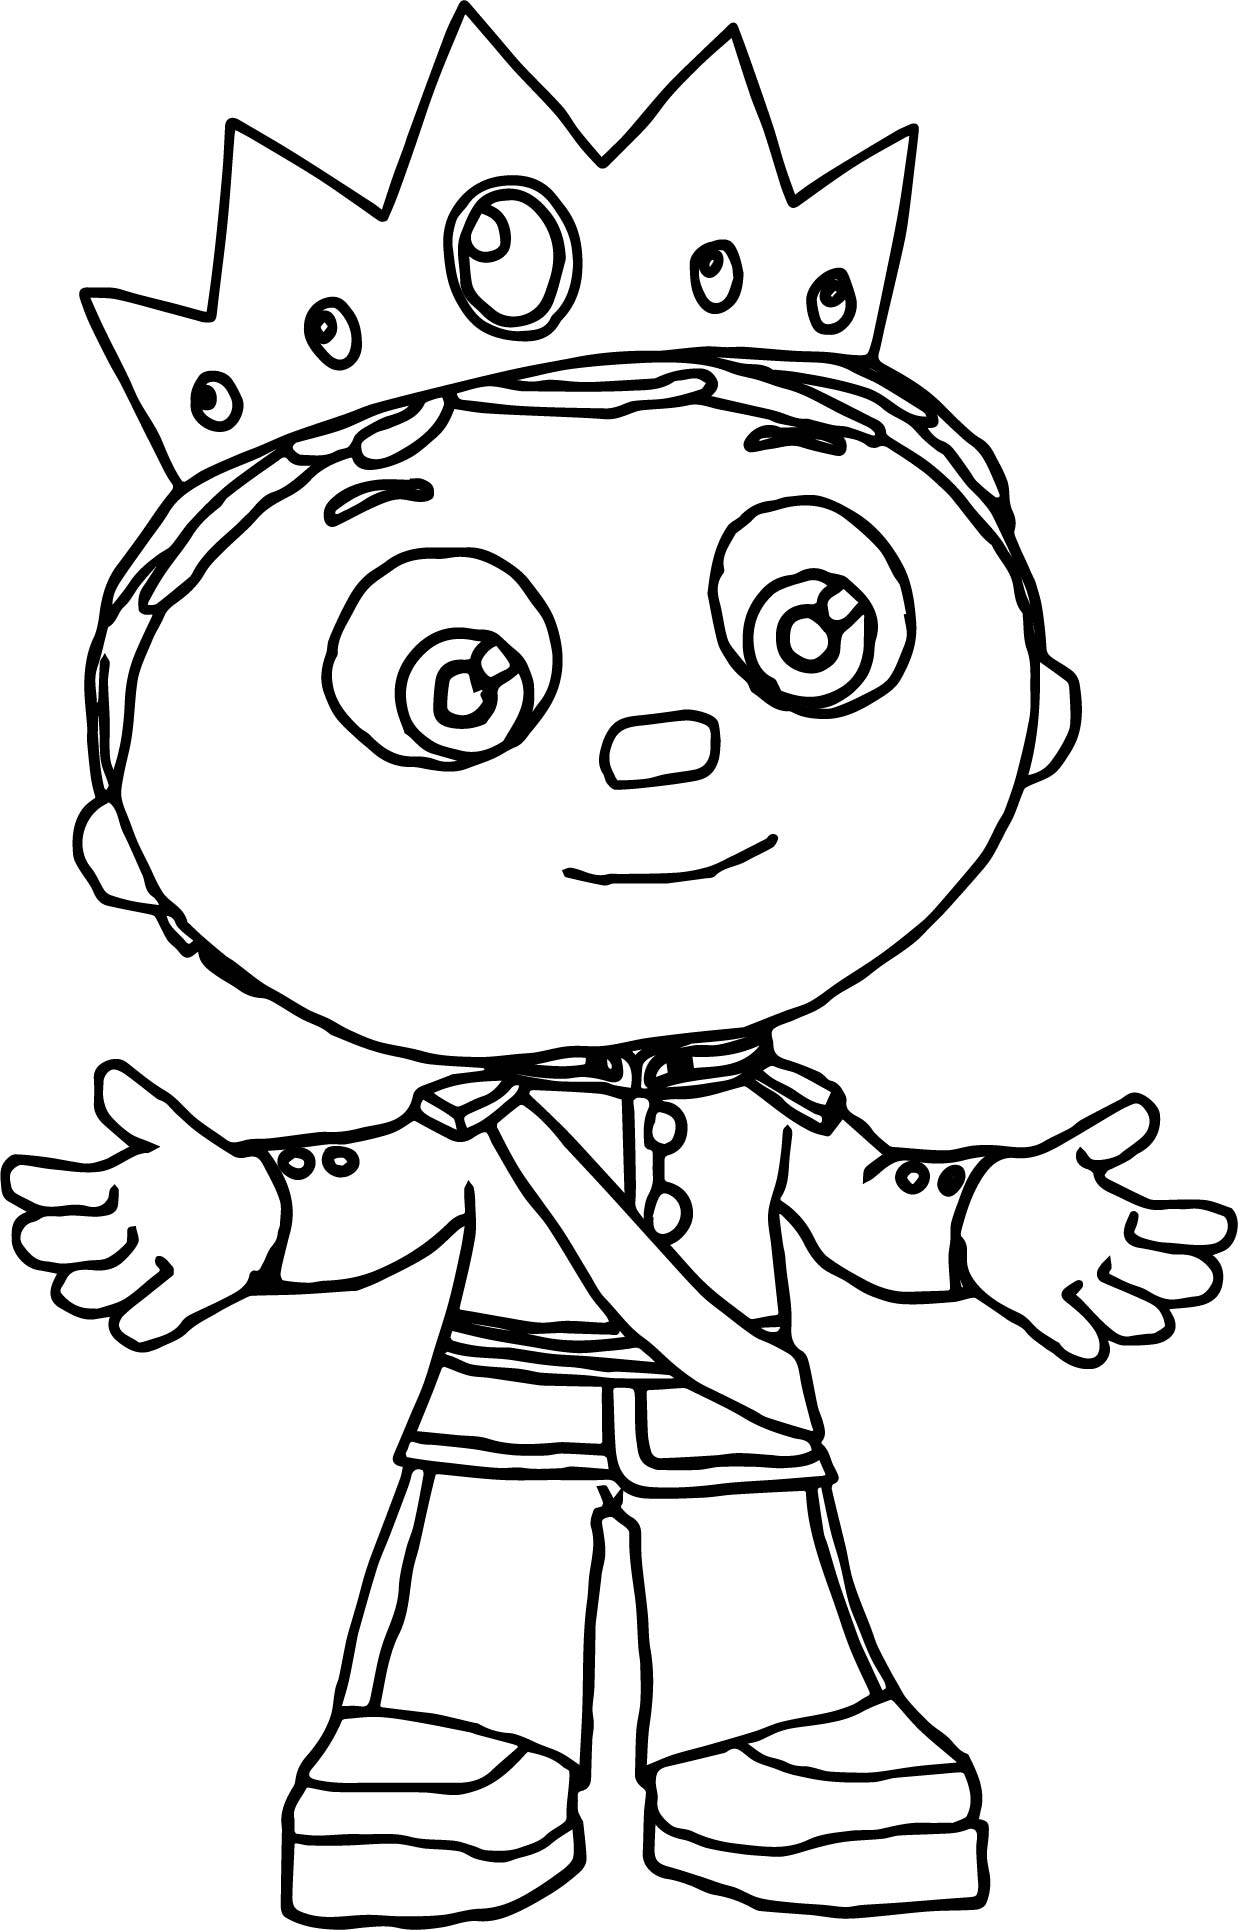 superstar coloring pages - photo#11